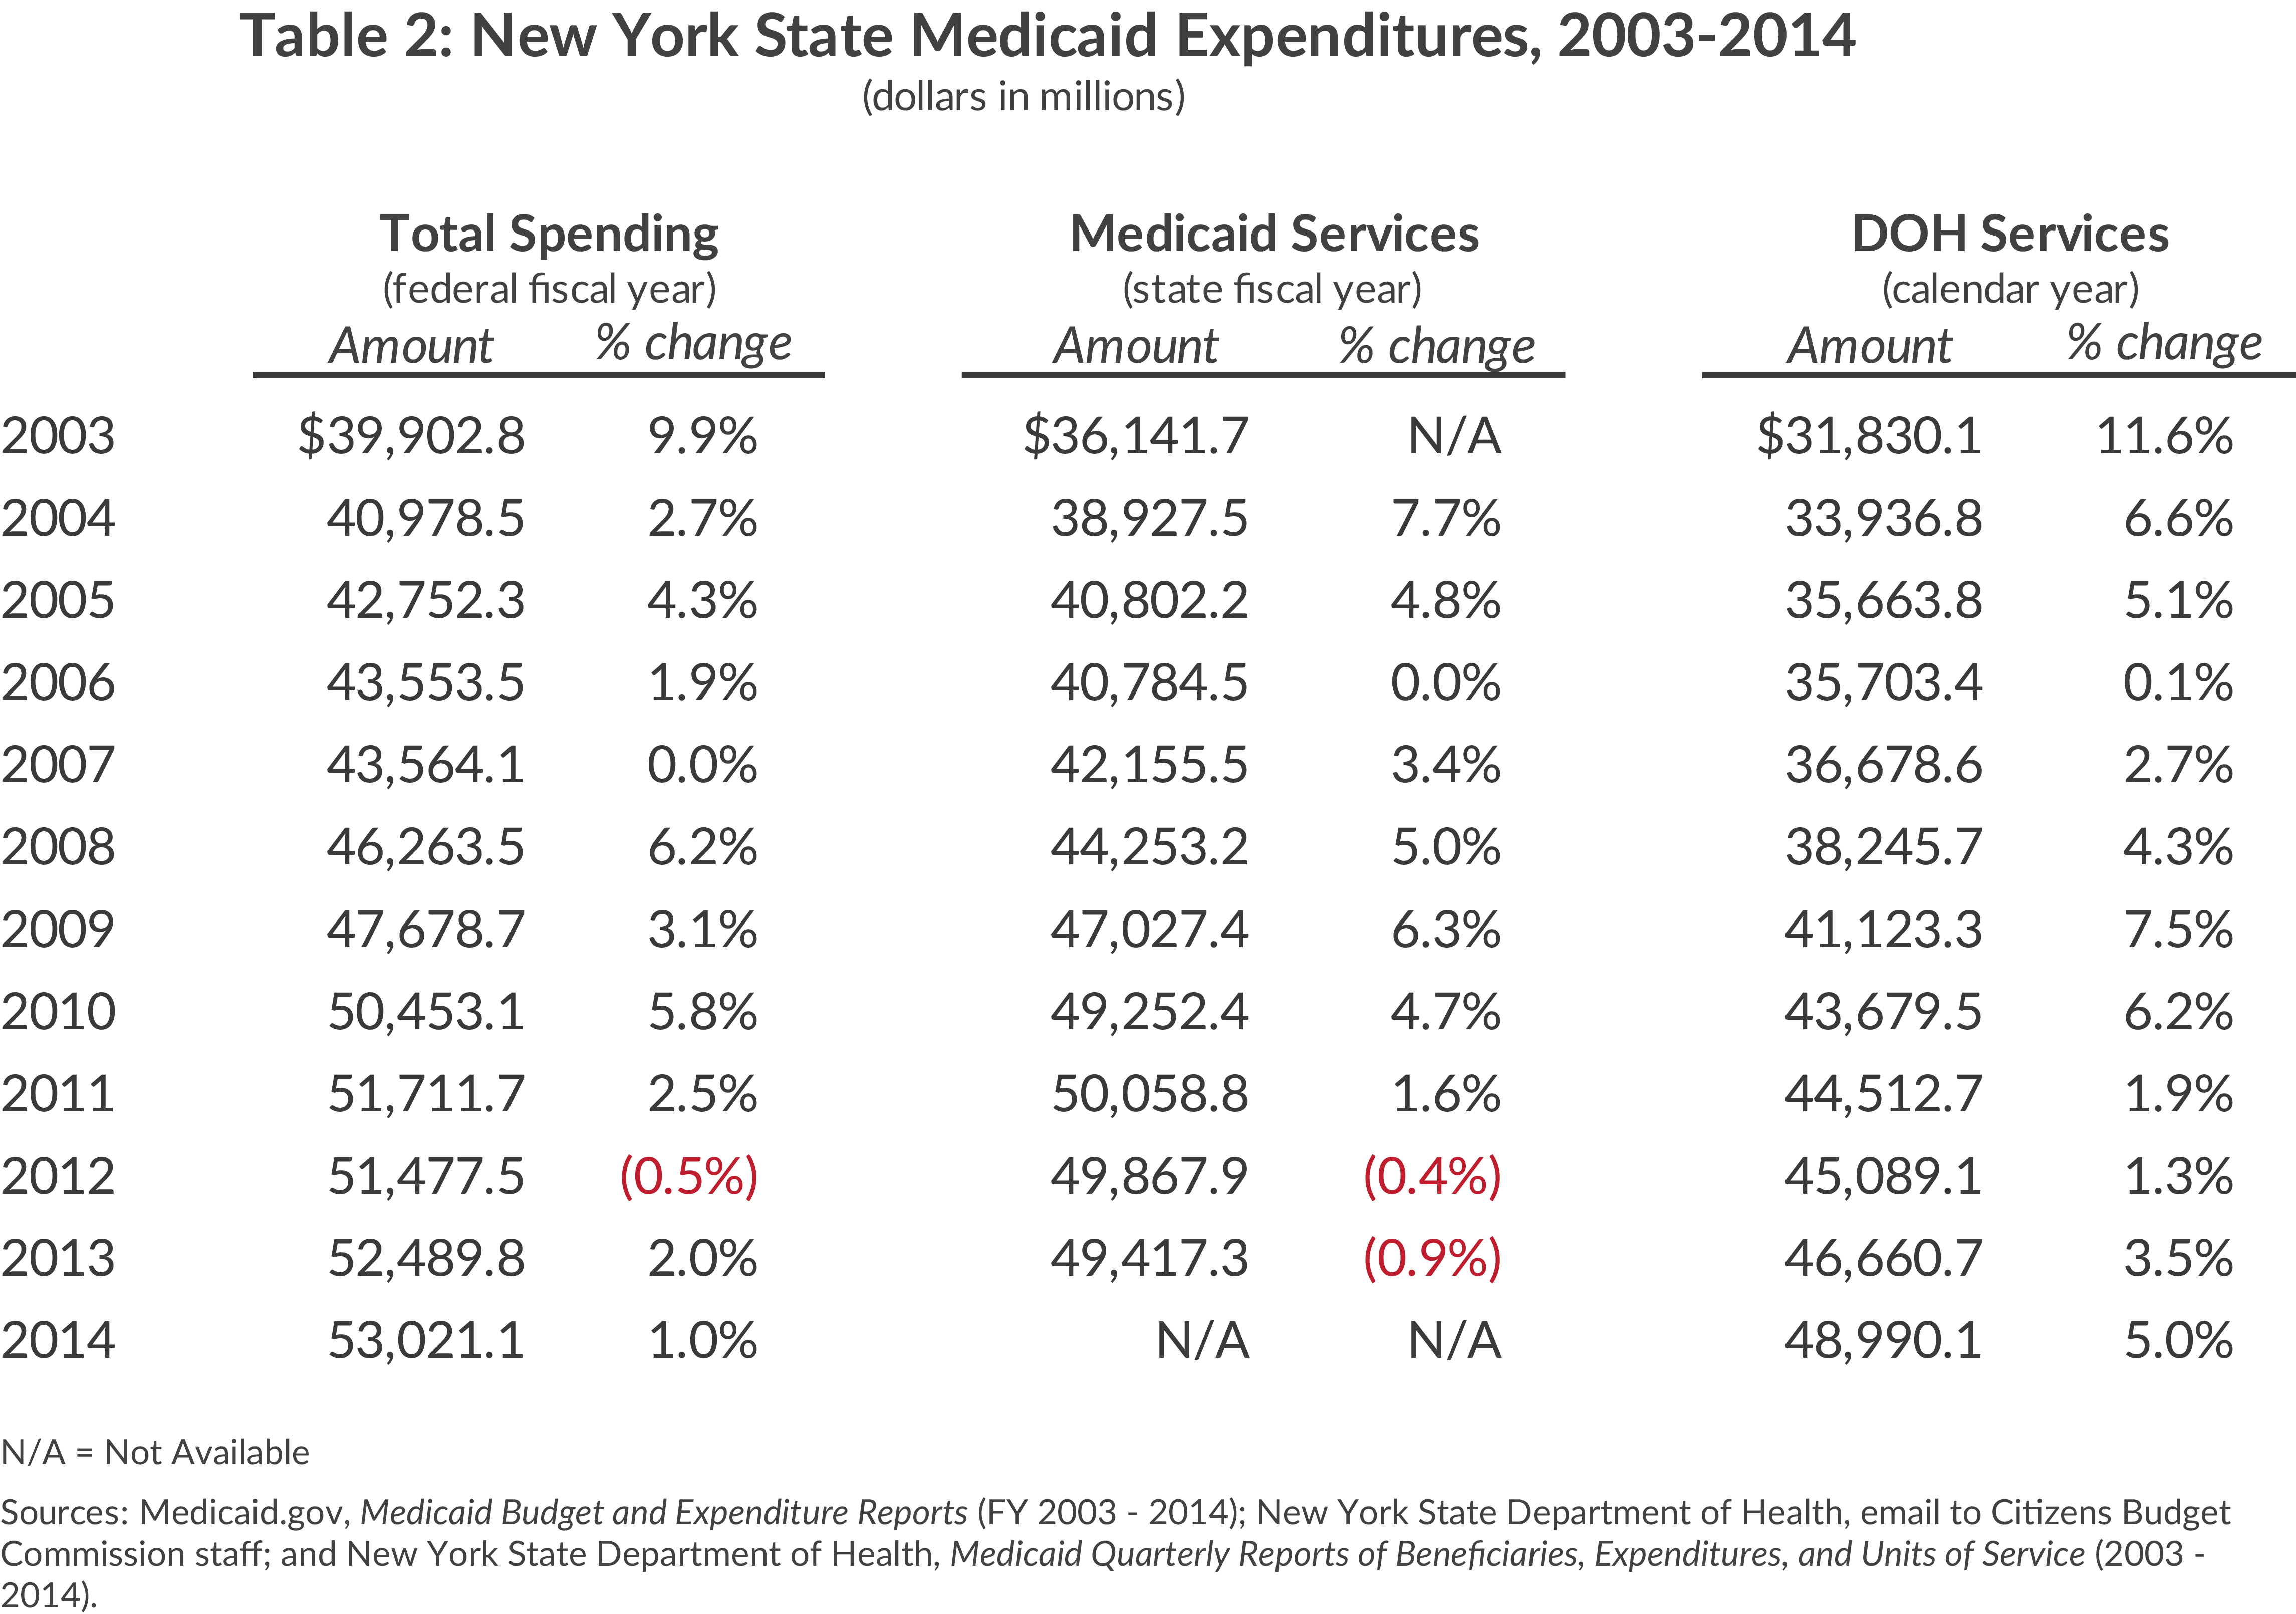 New York State Medicaid Expenditures, 2003-2014